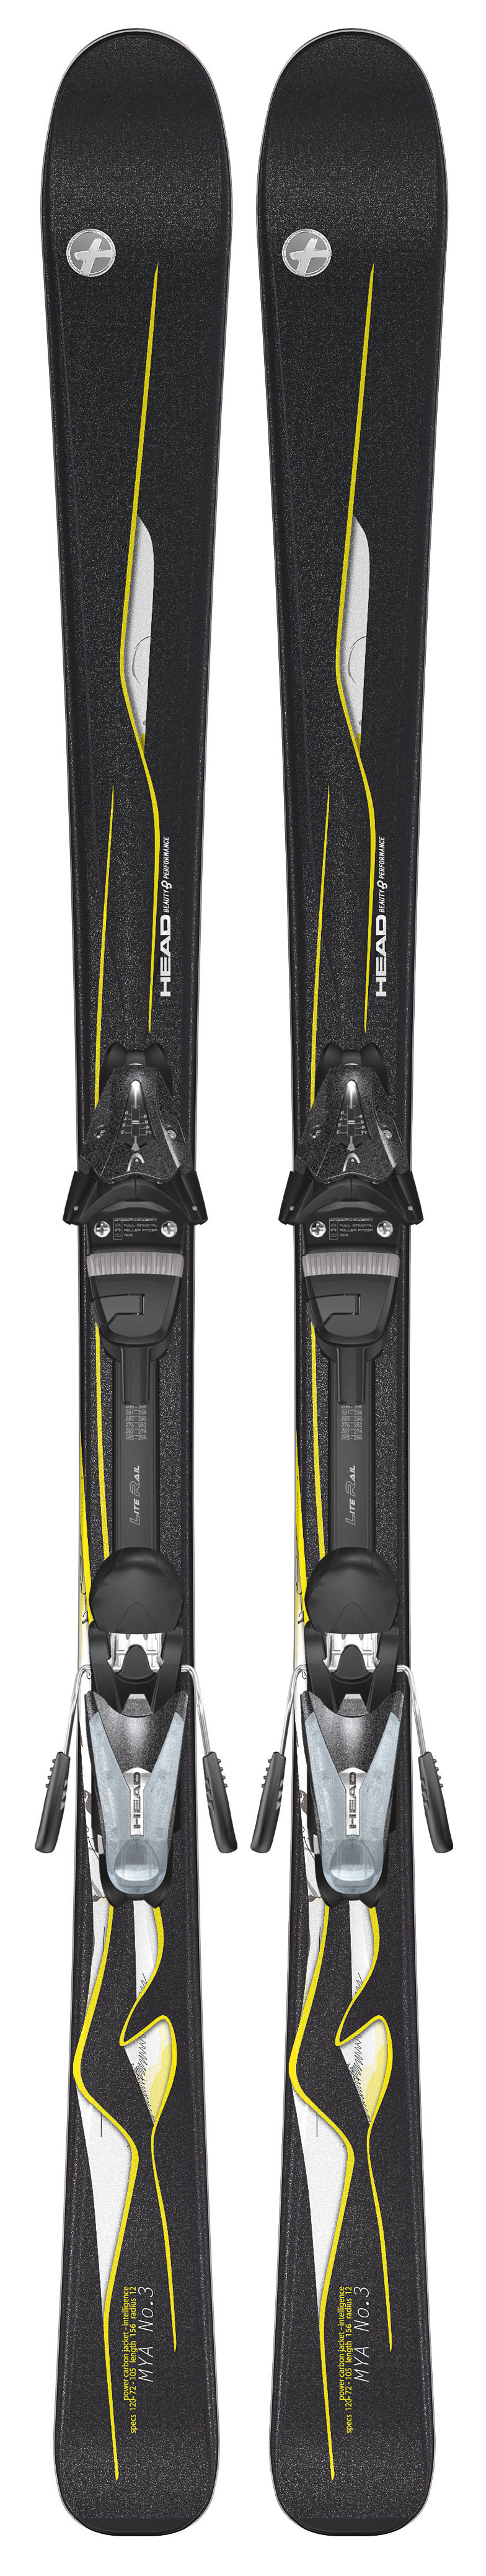 Ski The Head Mya No. 3 Skis with Mya LR Bindings is a great package for beginner to intermediate skiers. These skis are made from a sintered wood core for smoothness and stability. Ideal for a beginning skier learning the basics and fundamentals of skiing, there is no need to worry too much about breaking these skis when going down the mountain.  Lengths: 149/156/163    Dimensions: 120/72/105 @ length 156    Radius: 12.0 @ length 156    Intelligence Technology    Power Carbon Jacket    Transparent UHM Base    LiteRail    HEAD MYA 9 LR    DIN 2.5-9    SL Lite Toe with TRP System    Full Diagonal    ABS - Anti Blocking System    SL Lite Heel    Dura-Coating - $299.95